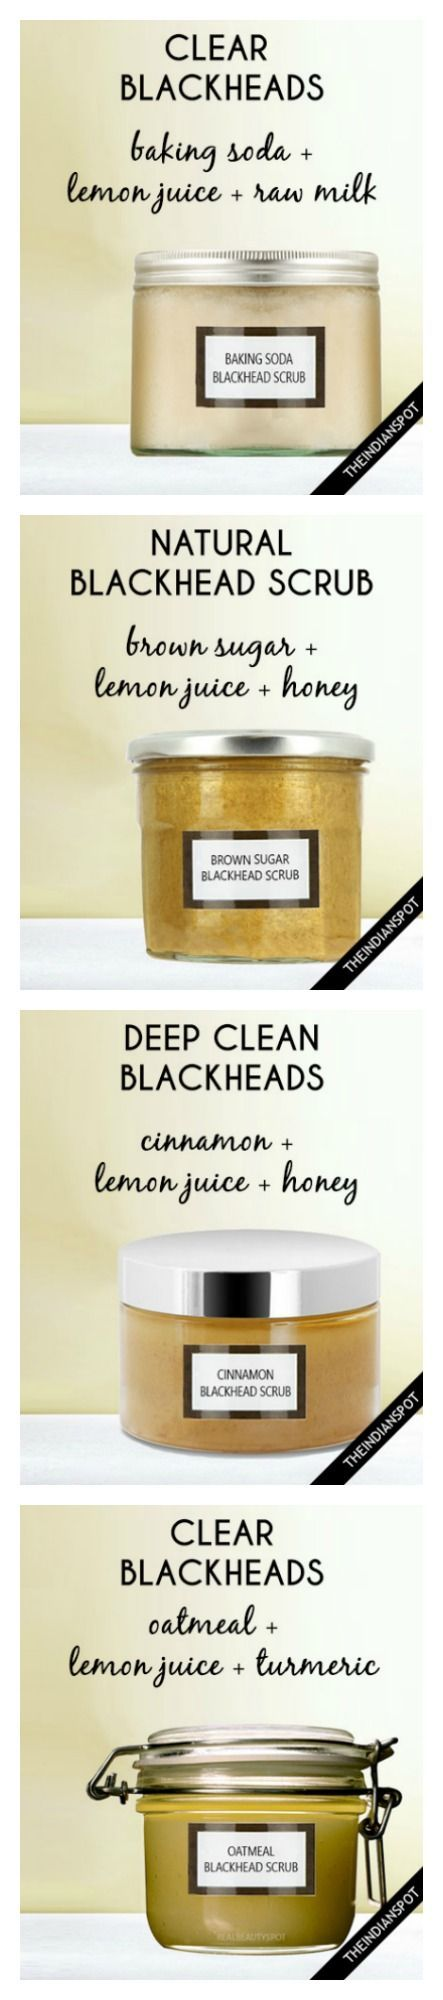 10 BEST HOMEMADE FACE, BODY, LIP, NAIL AND HAIR SCRUBS to clear blackheads